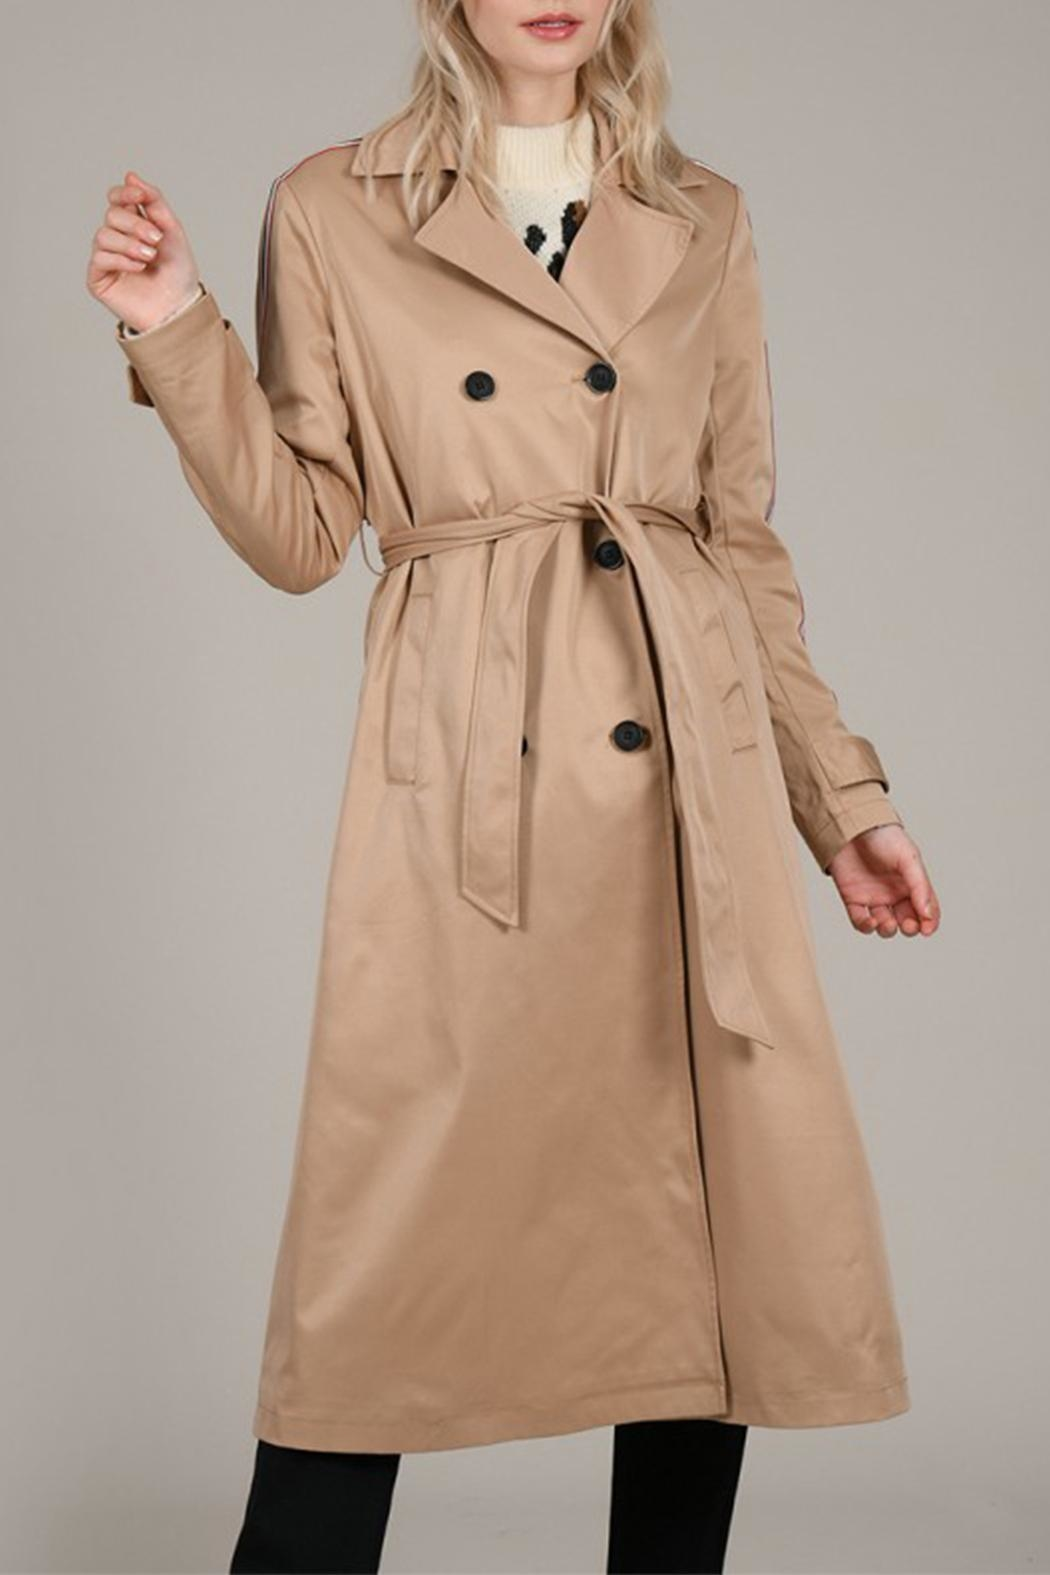 Molly Bracken Band Trench Coat - Back Cropped Image